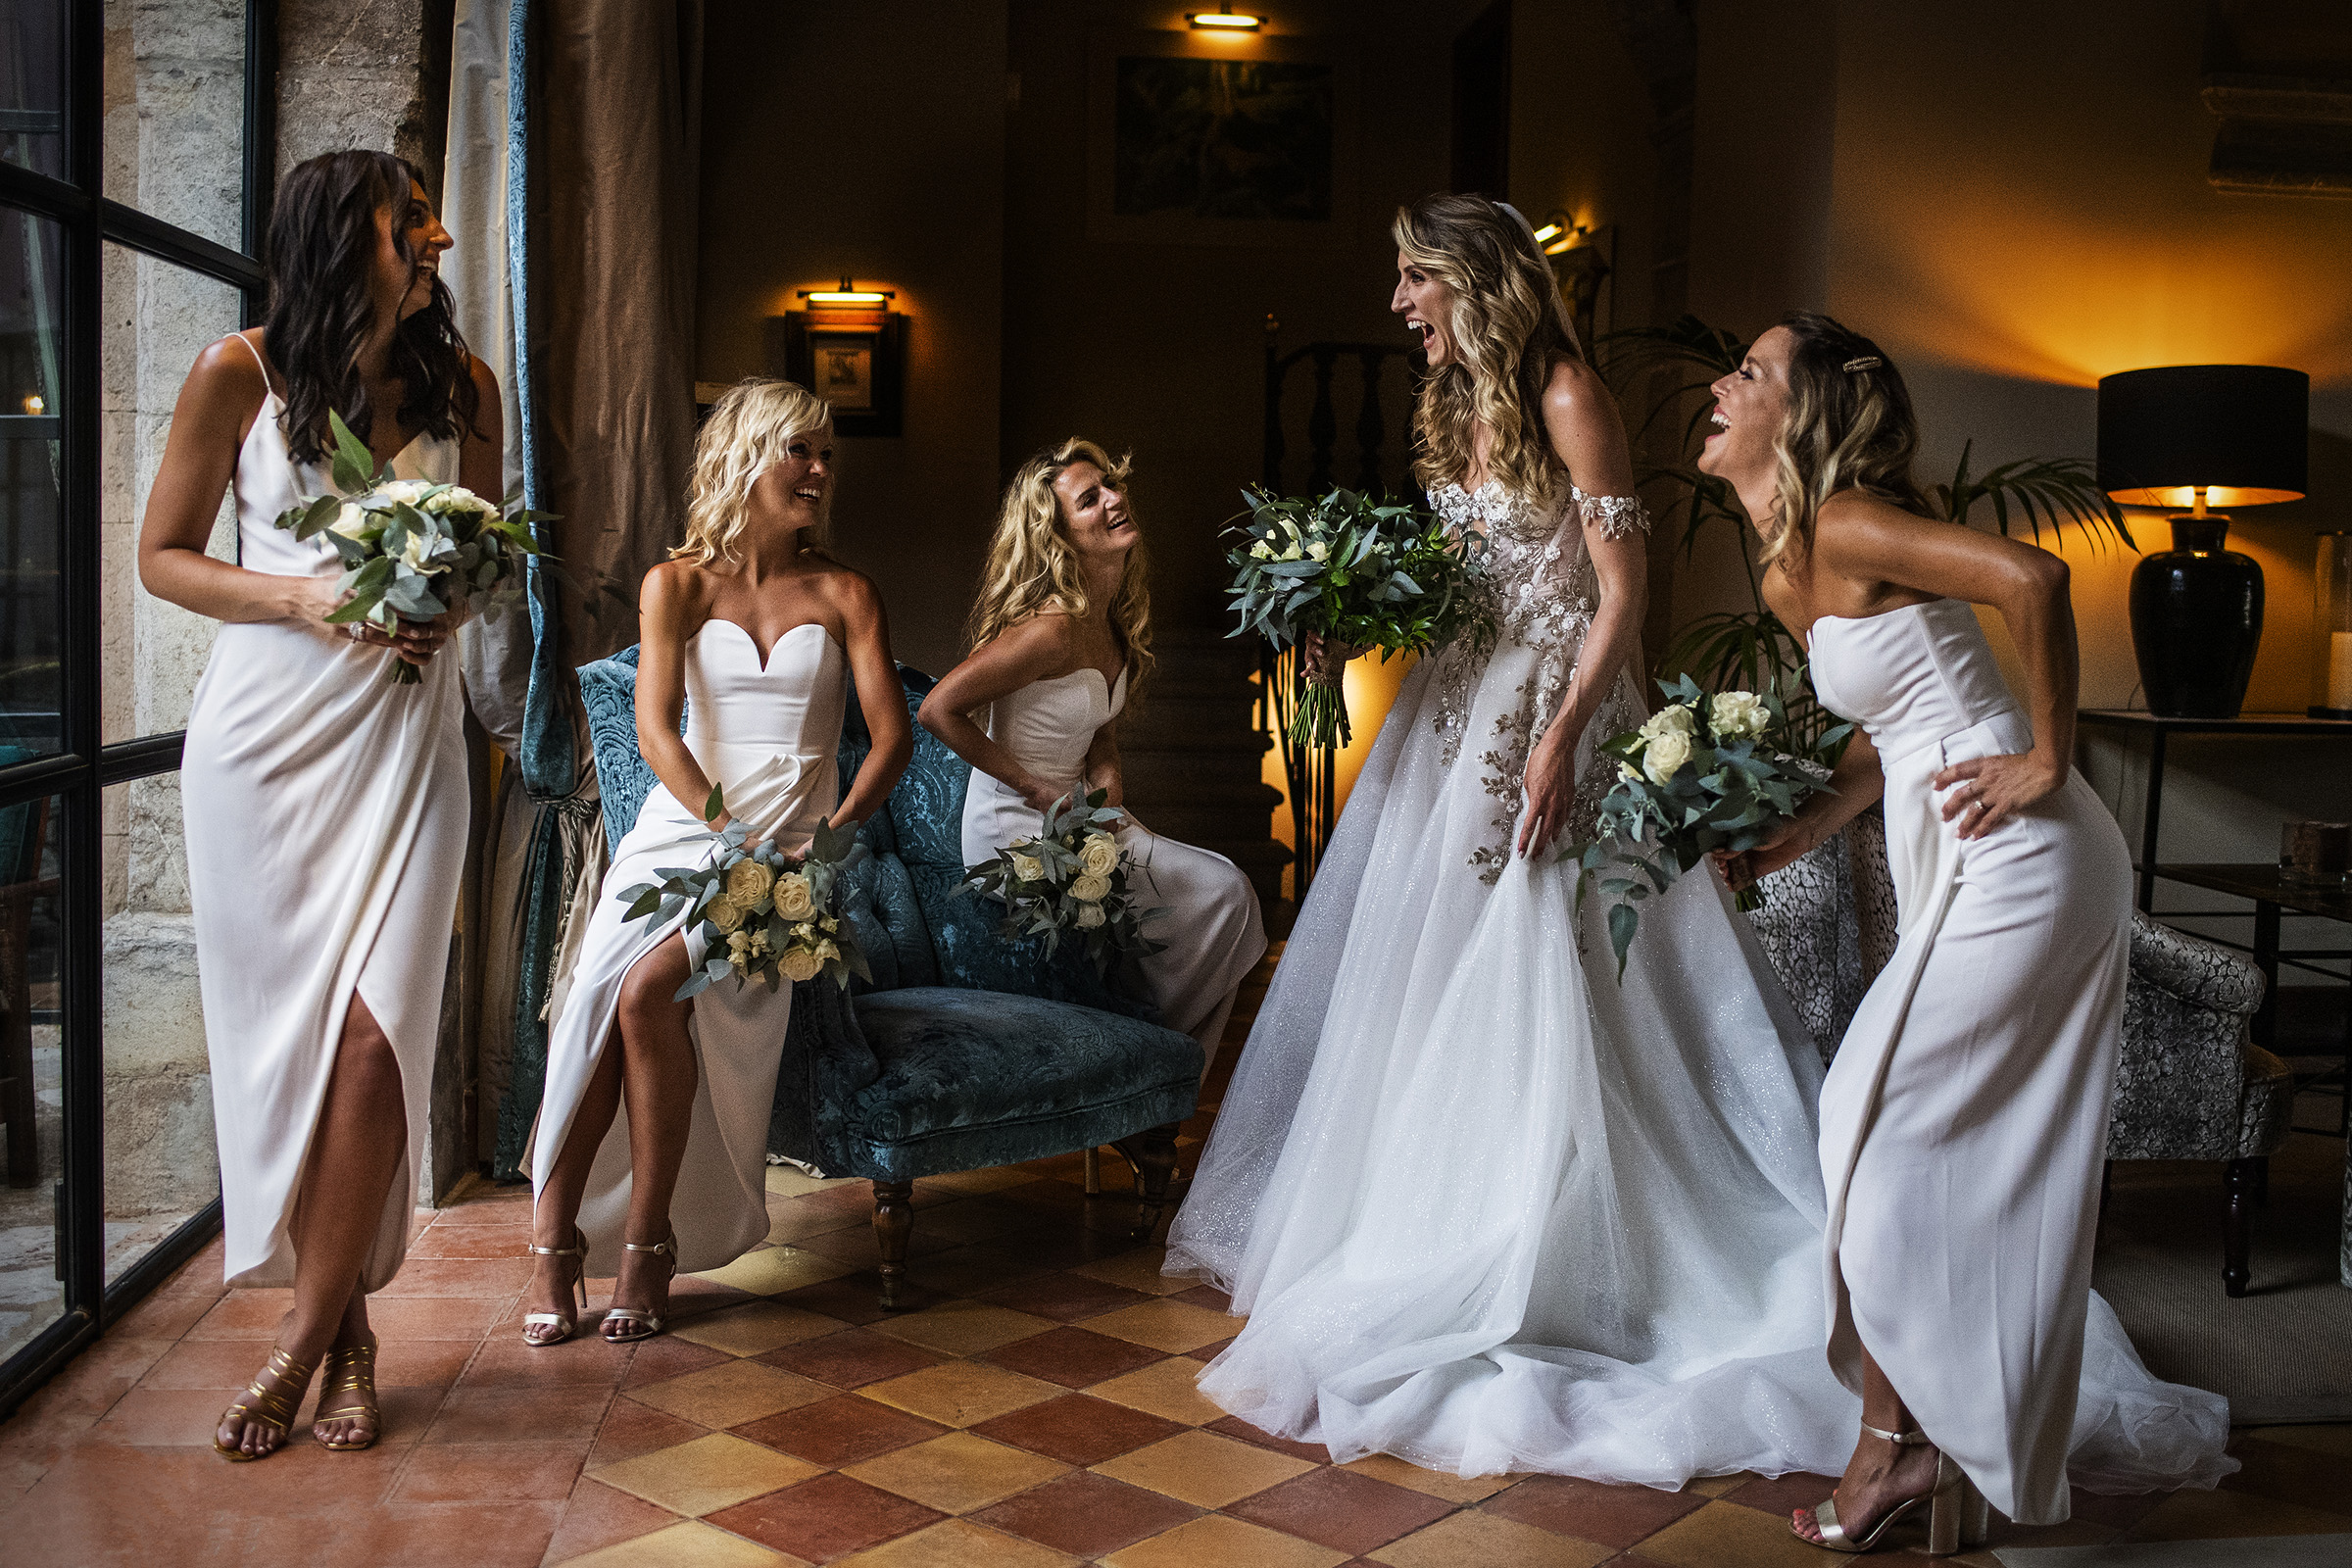 Bridal party having fun - photo by Lax Photography